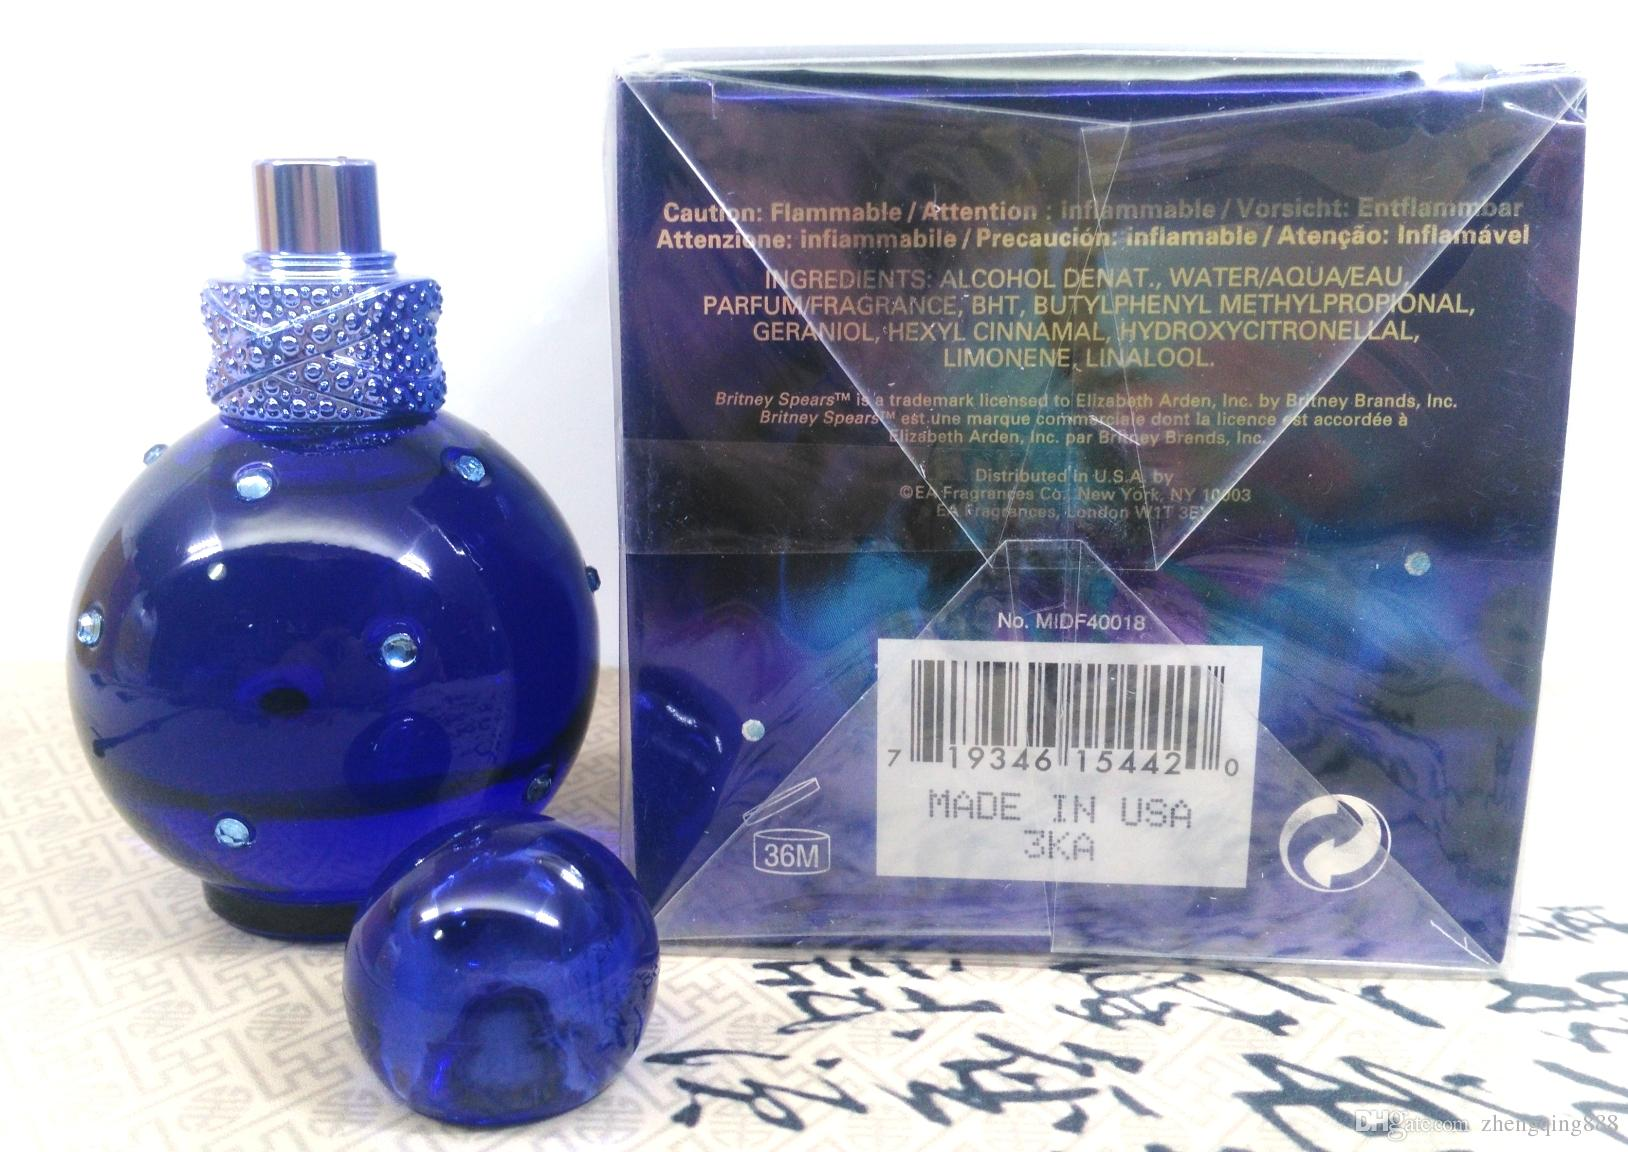 Best Selling Hot Blue Midnight Fantasy Perfume Lasting 100ml Manly Woody Notes Fresh Fragrance Lasting Perfume Factory Price Free Shopping Create Your